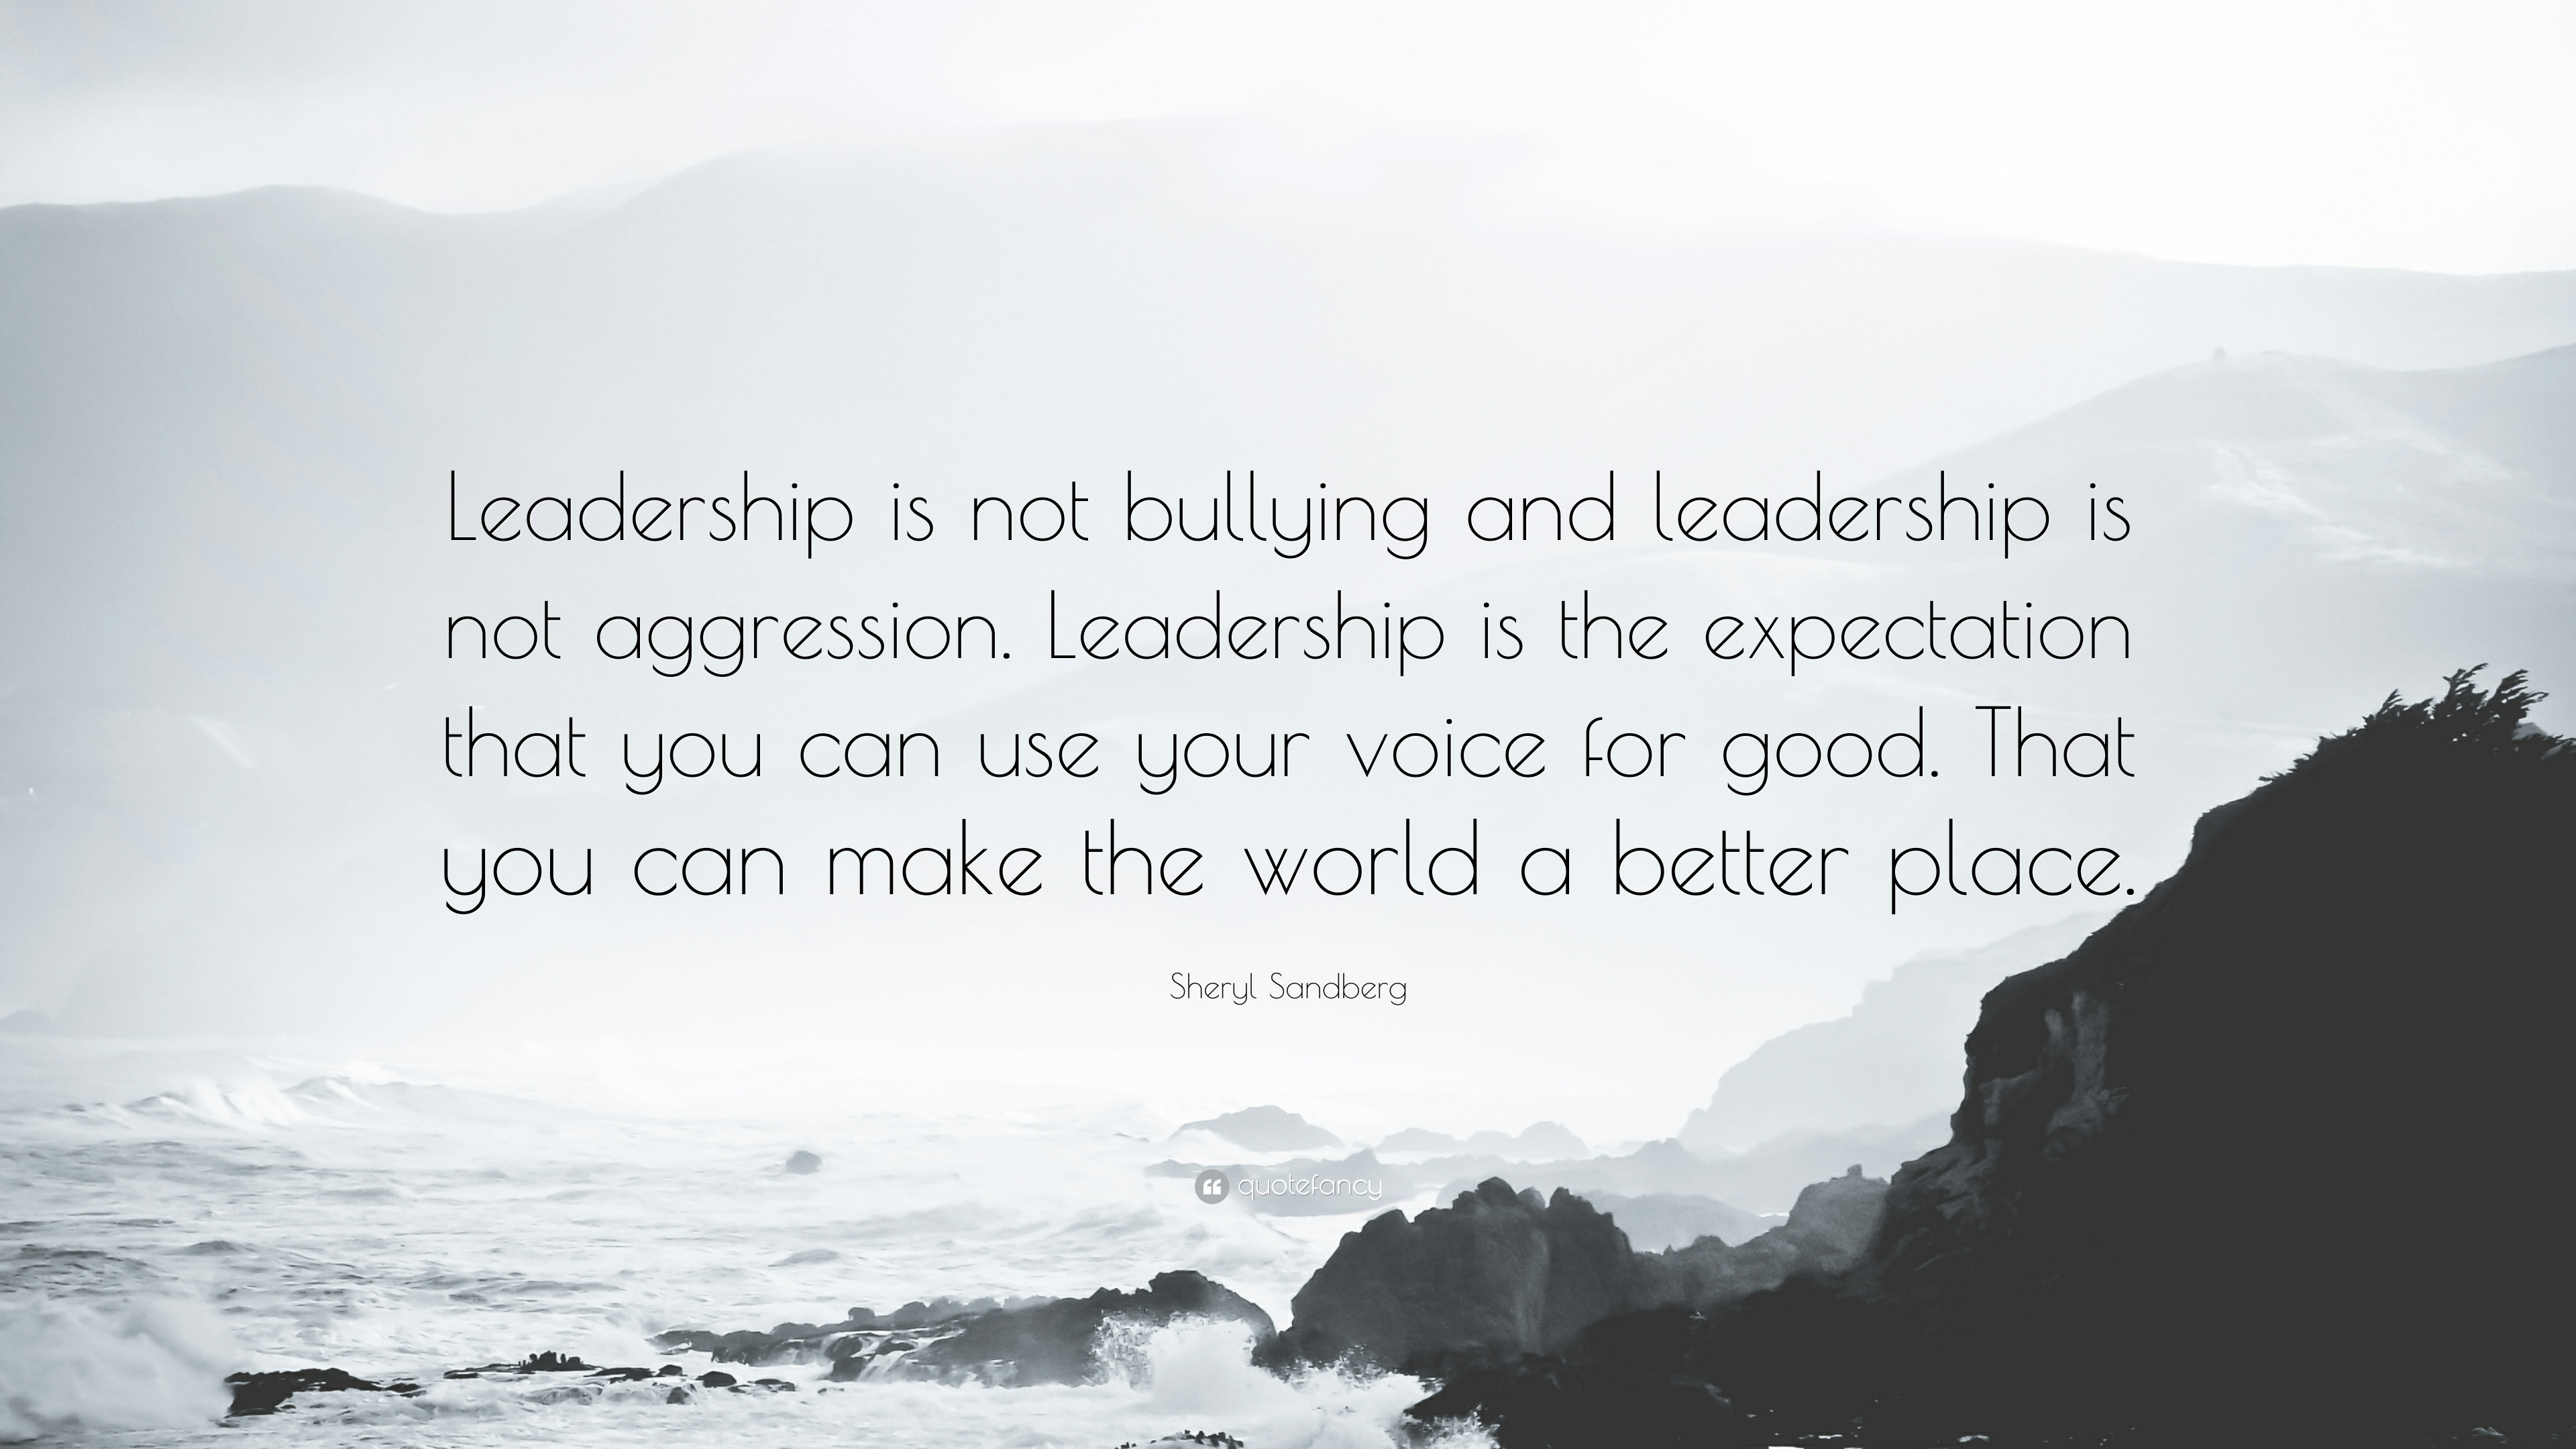 Quotes About Bullies Quotes About Bullies Enchanting 87 Inspirational Quotes About